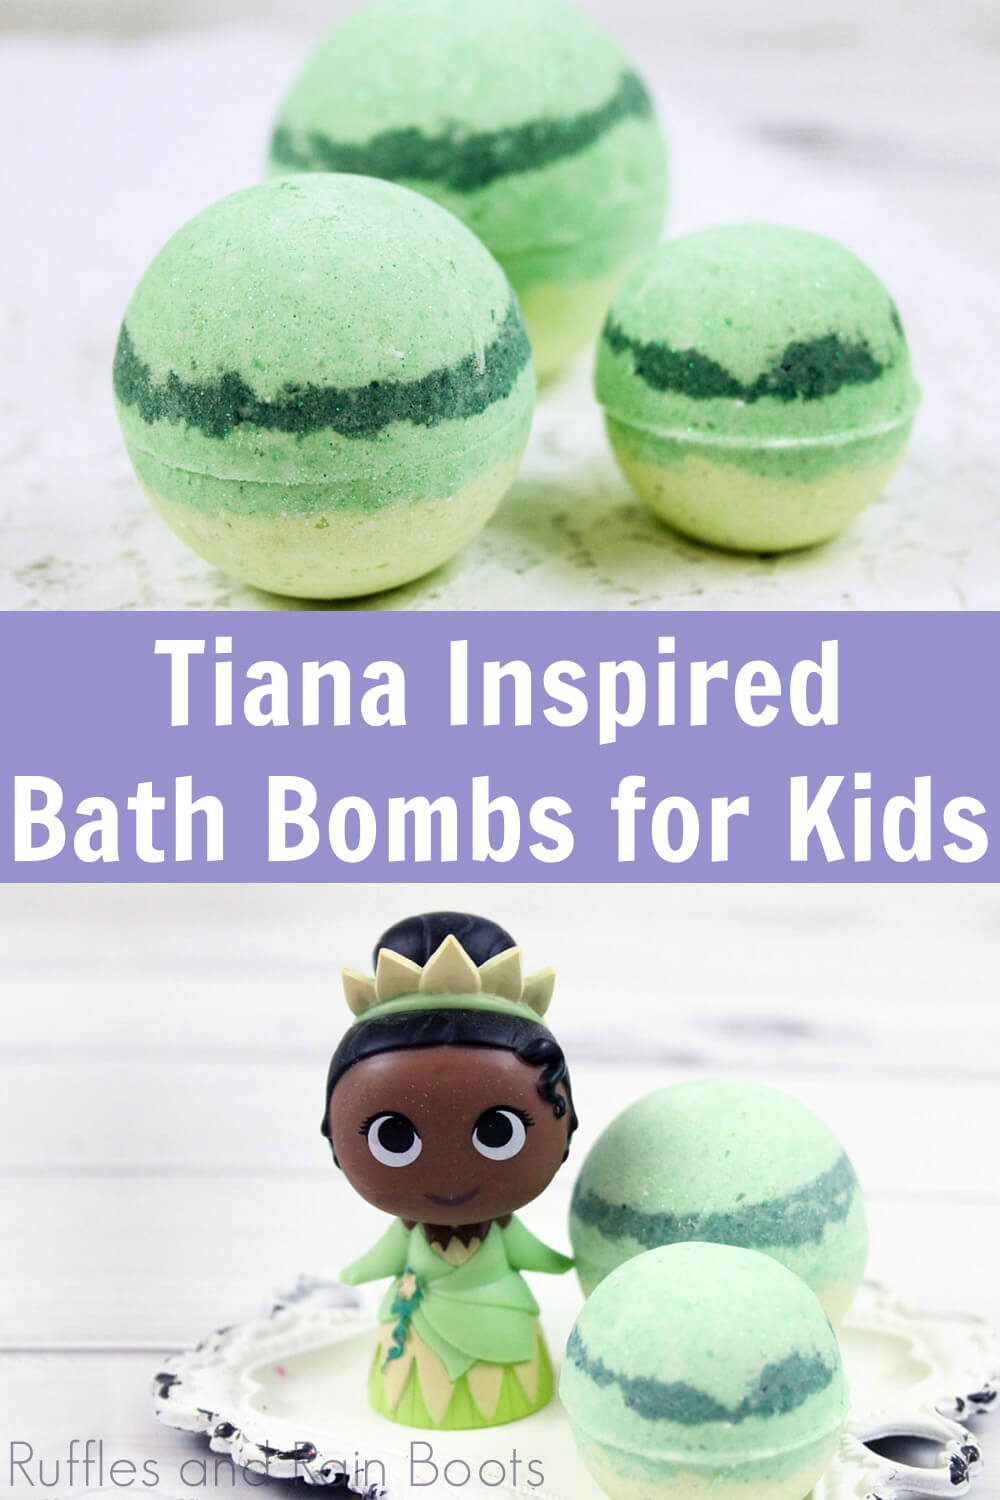 close up images of green and yellow bath fizzies on white background with text Tiana inspired bath bombs for kids